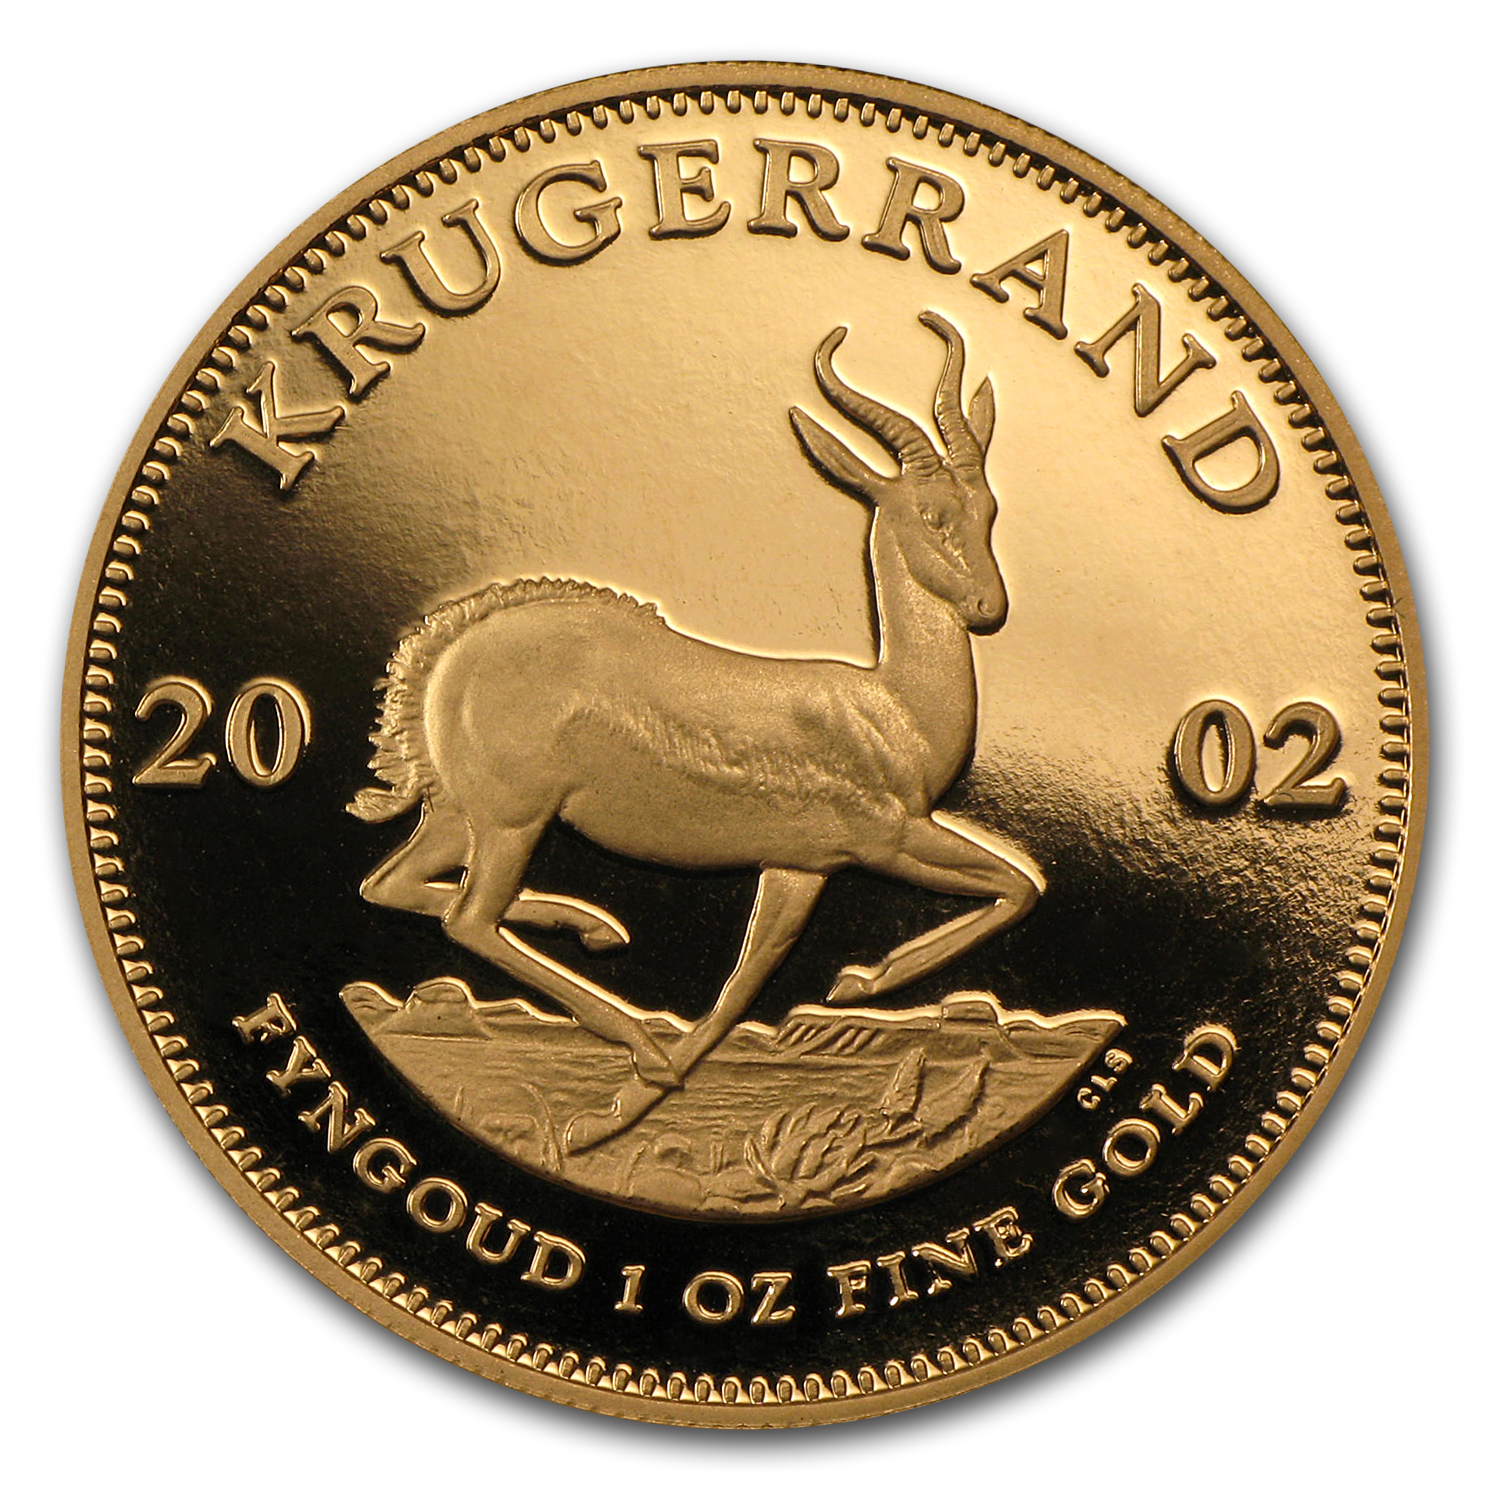 2002 South Africa 1 oz Proof Gold Krugerrand (w/Box & COA)